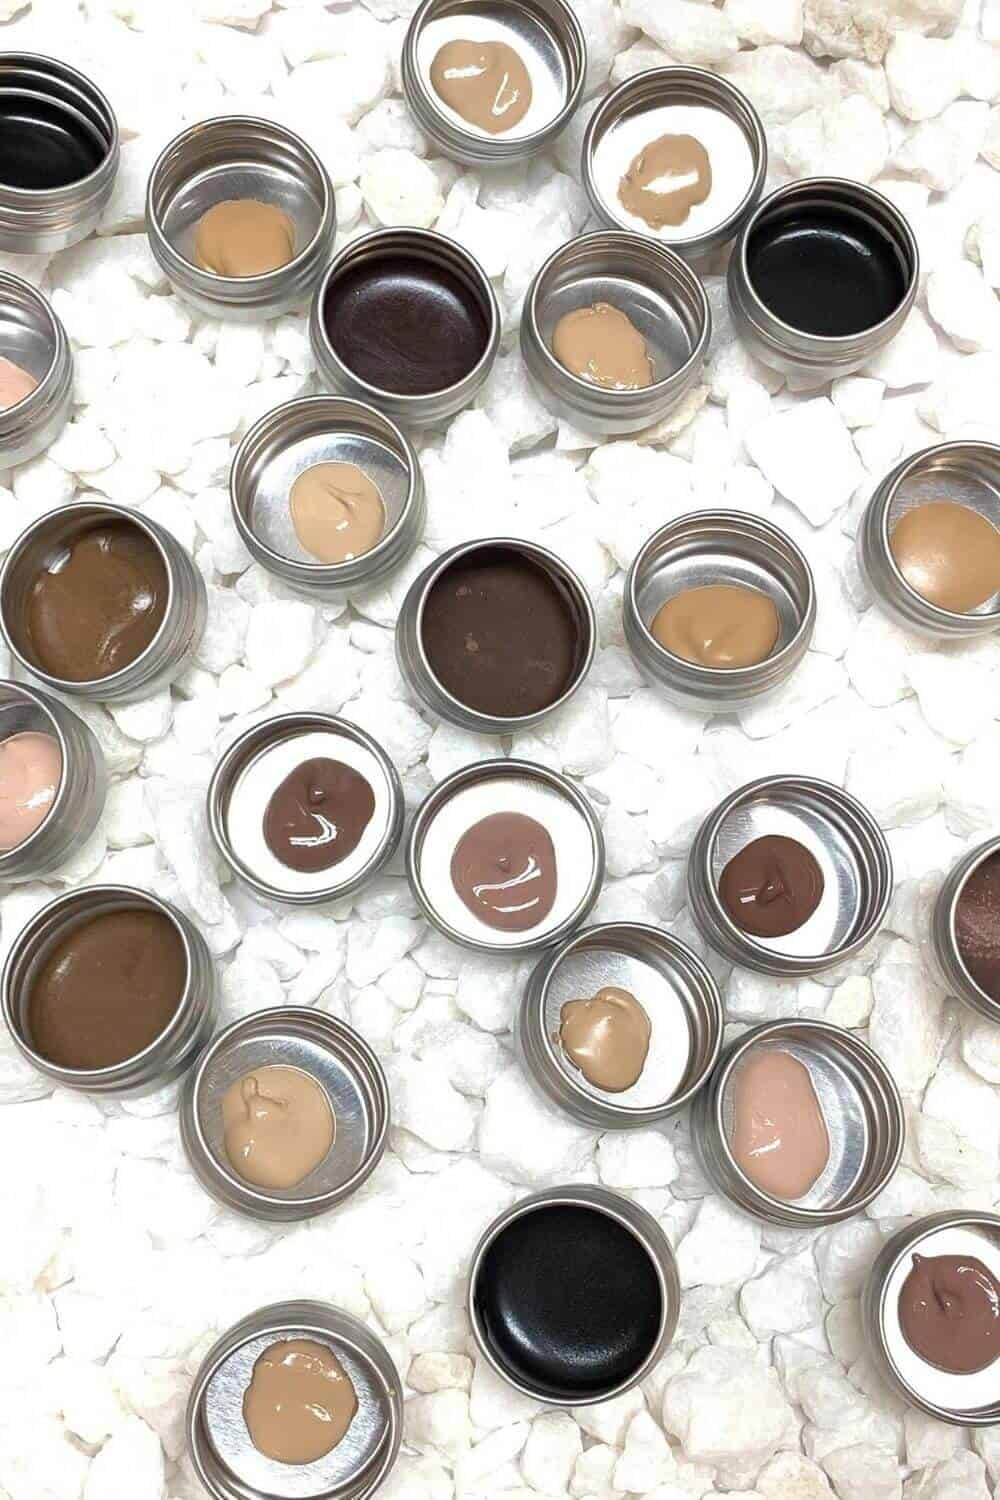 We've covered lots of great zero waste beauty products that are better for you AND the environment. Now we're narrowing it down to the best of the best. Image by DAB Herb Makeup #zerowastebeauty #sustainablebeauty